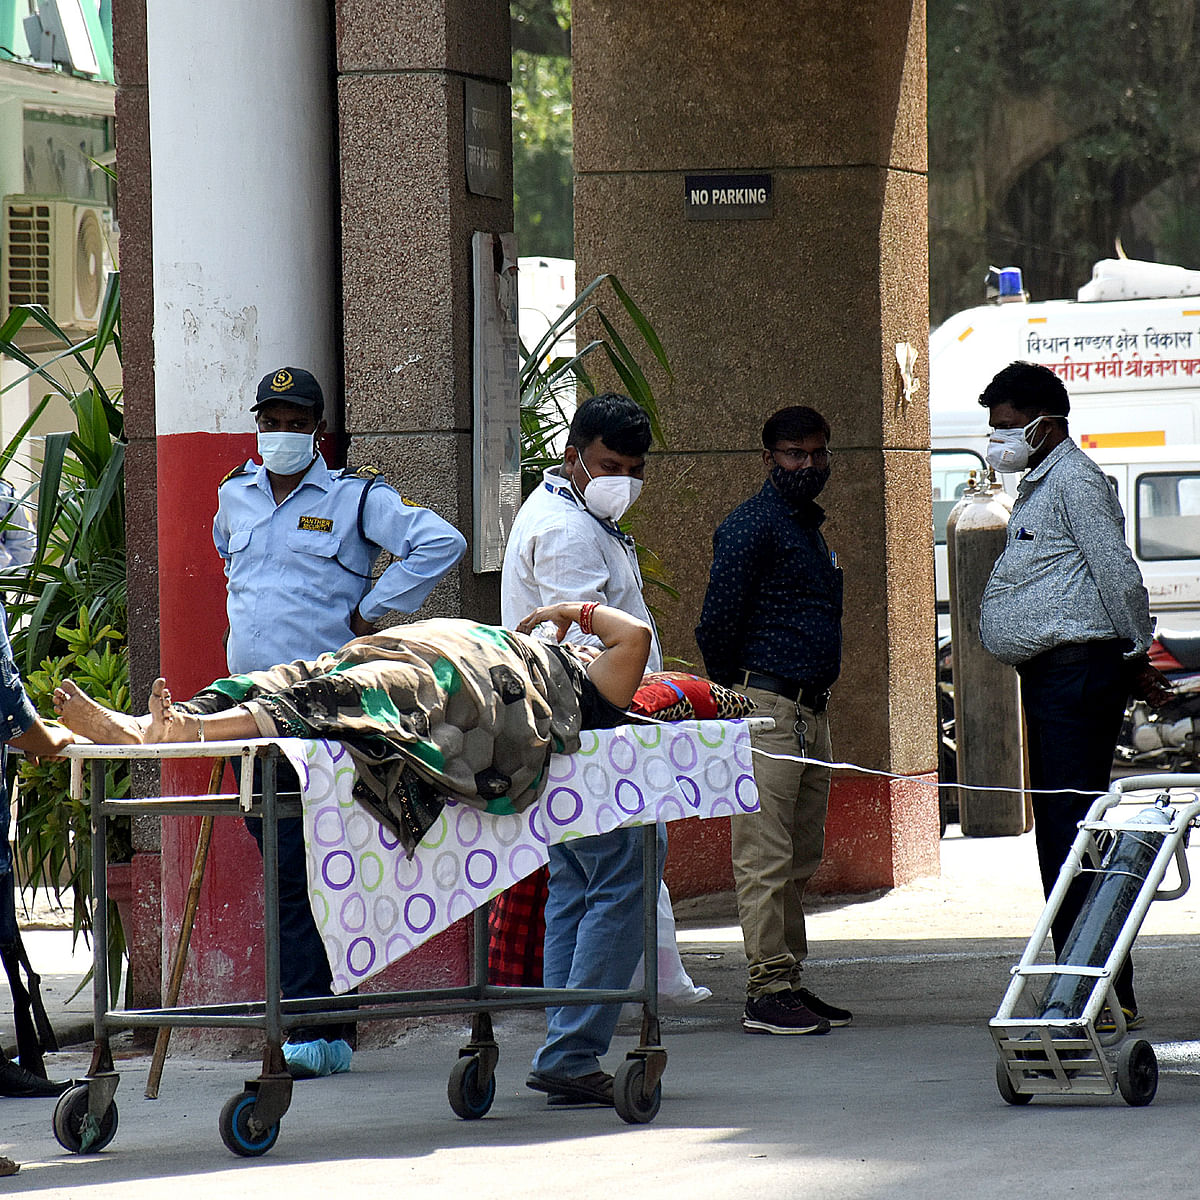 Death of COVID-19 patients for non-supply of oxygen criminal act, not less than genocide: Allahabad HC